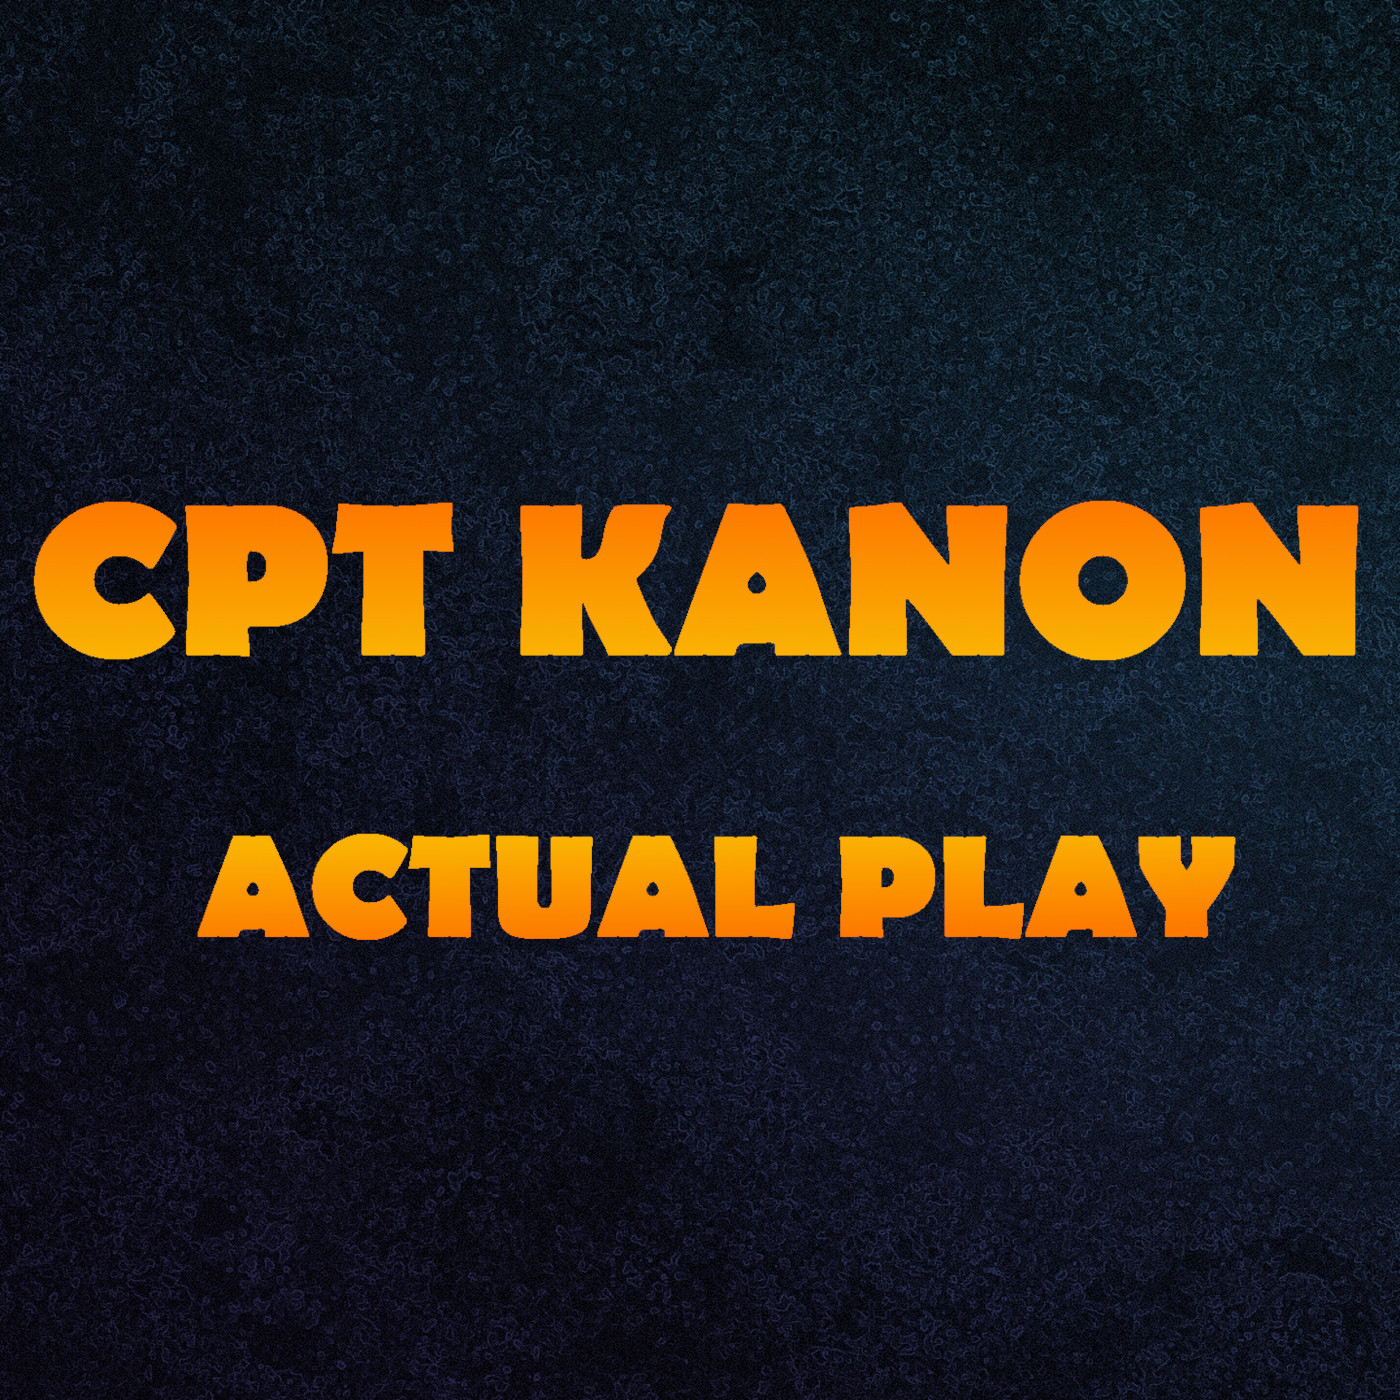 Cpt Kanon - Actual Play